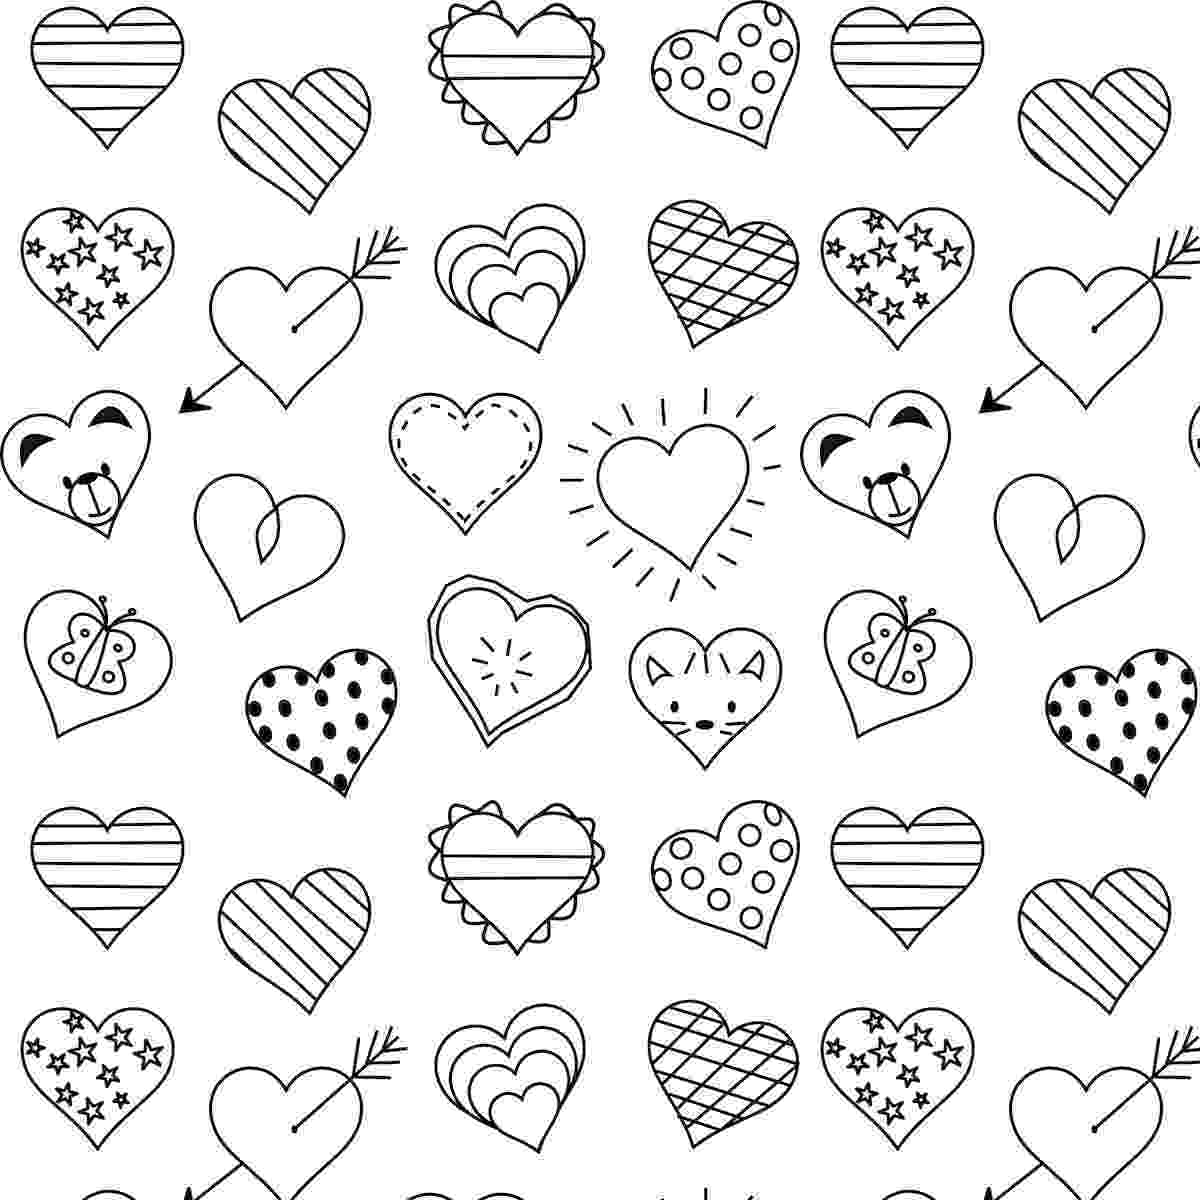 coloring pages for hearts free printable heart coloring page ausdruckbare hearts for pages coloring